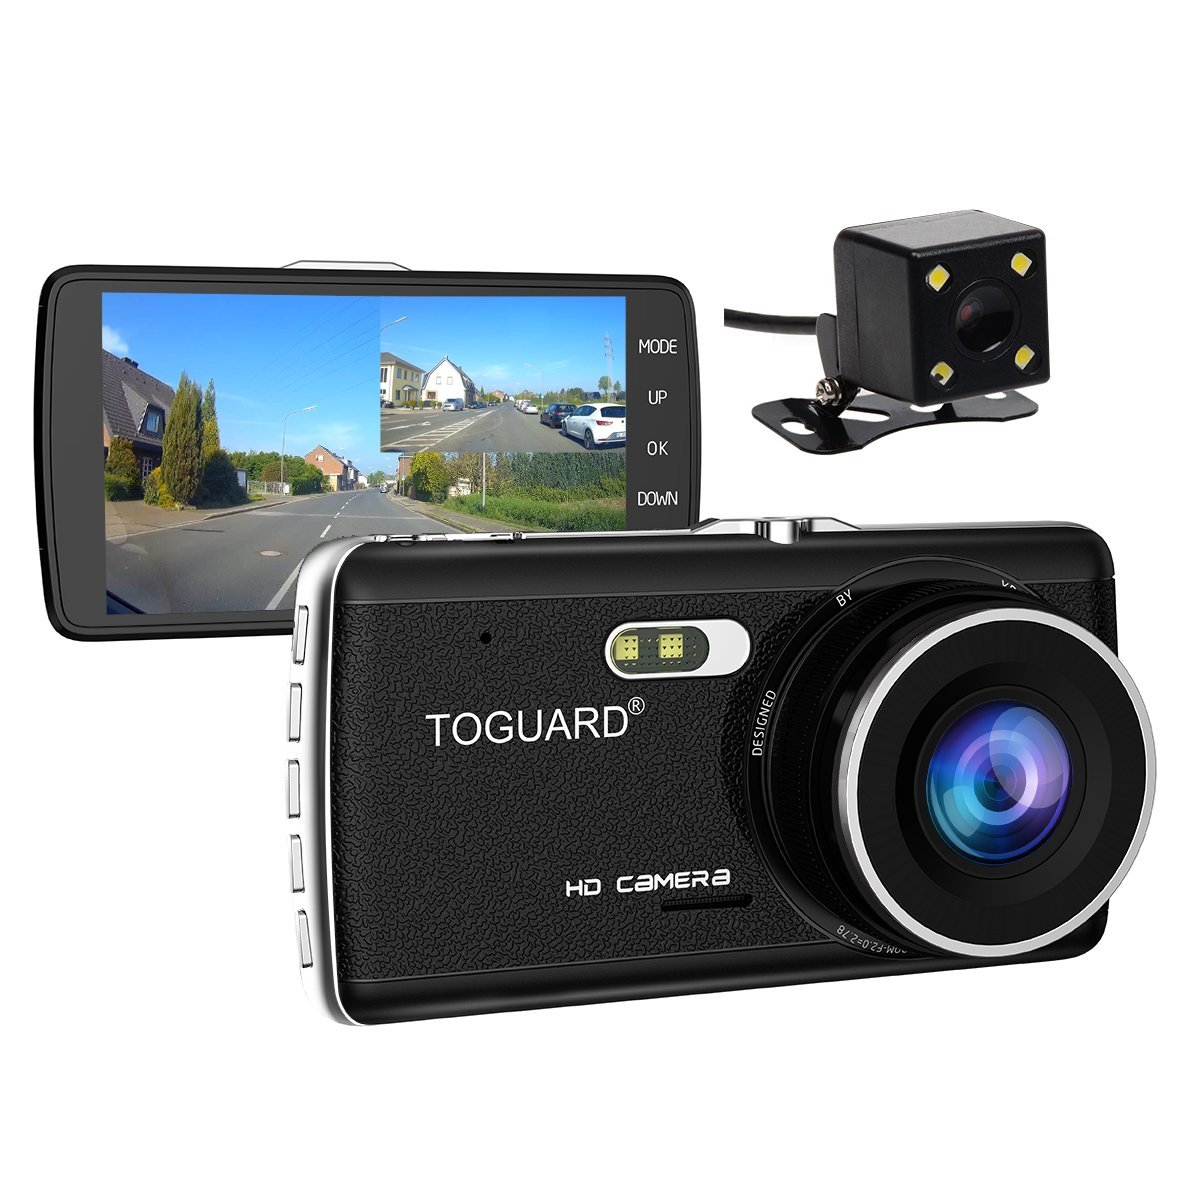 TOGUARD Dual Lens Dash Cam front and rear recording ATST, Night Vision,4.0'' IPS Screen,HD 1080P Car Dash Camera, Rearview Backup Camera,170 Degree Wide Angle, WDR, Loop Recording, G-sensor, Parking monitor